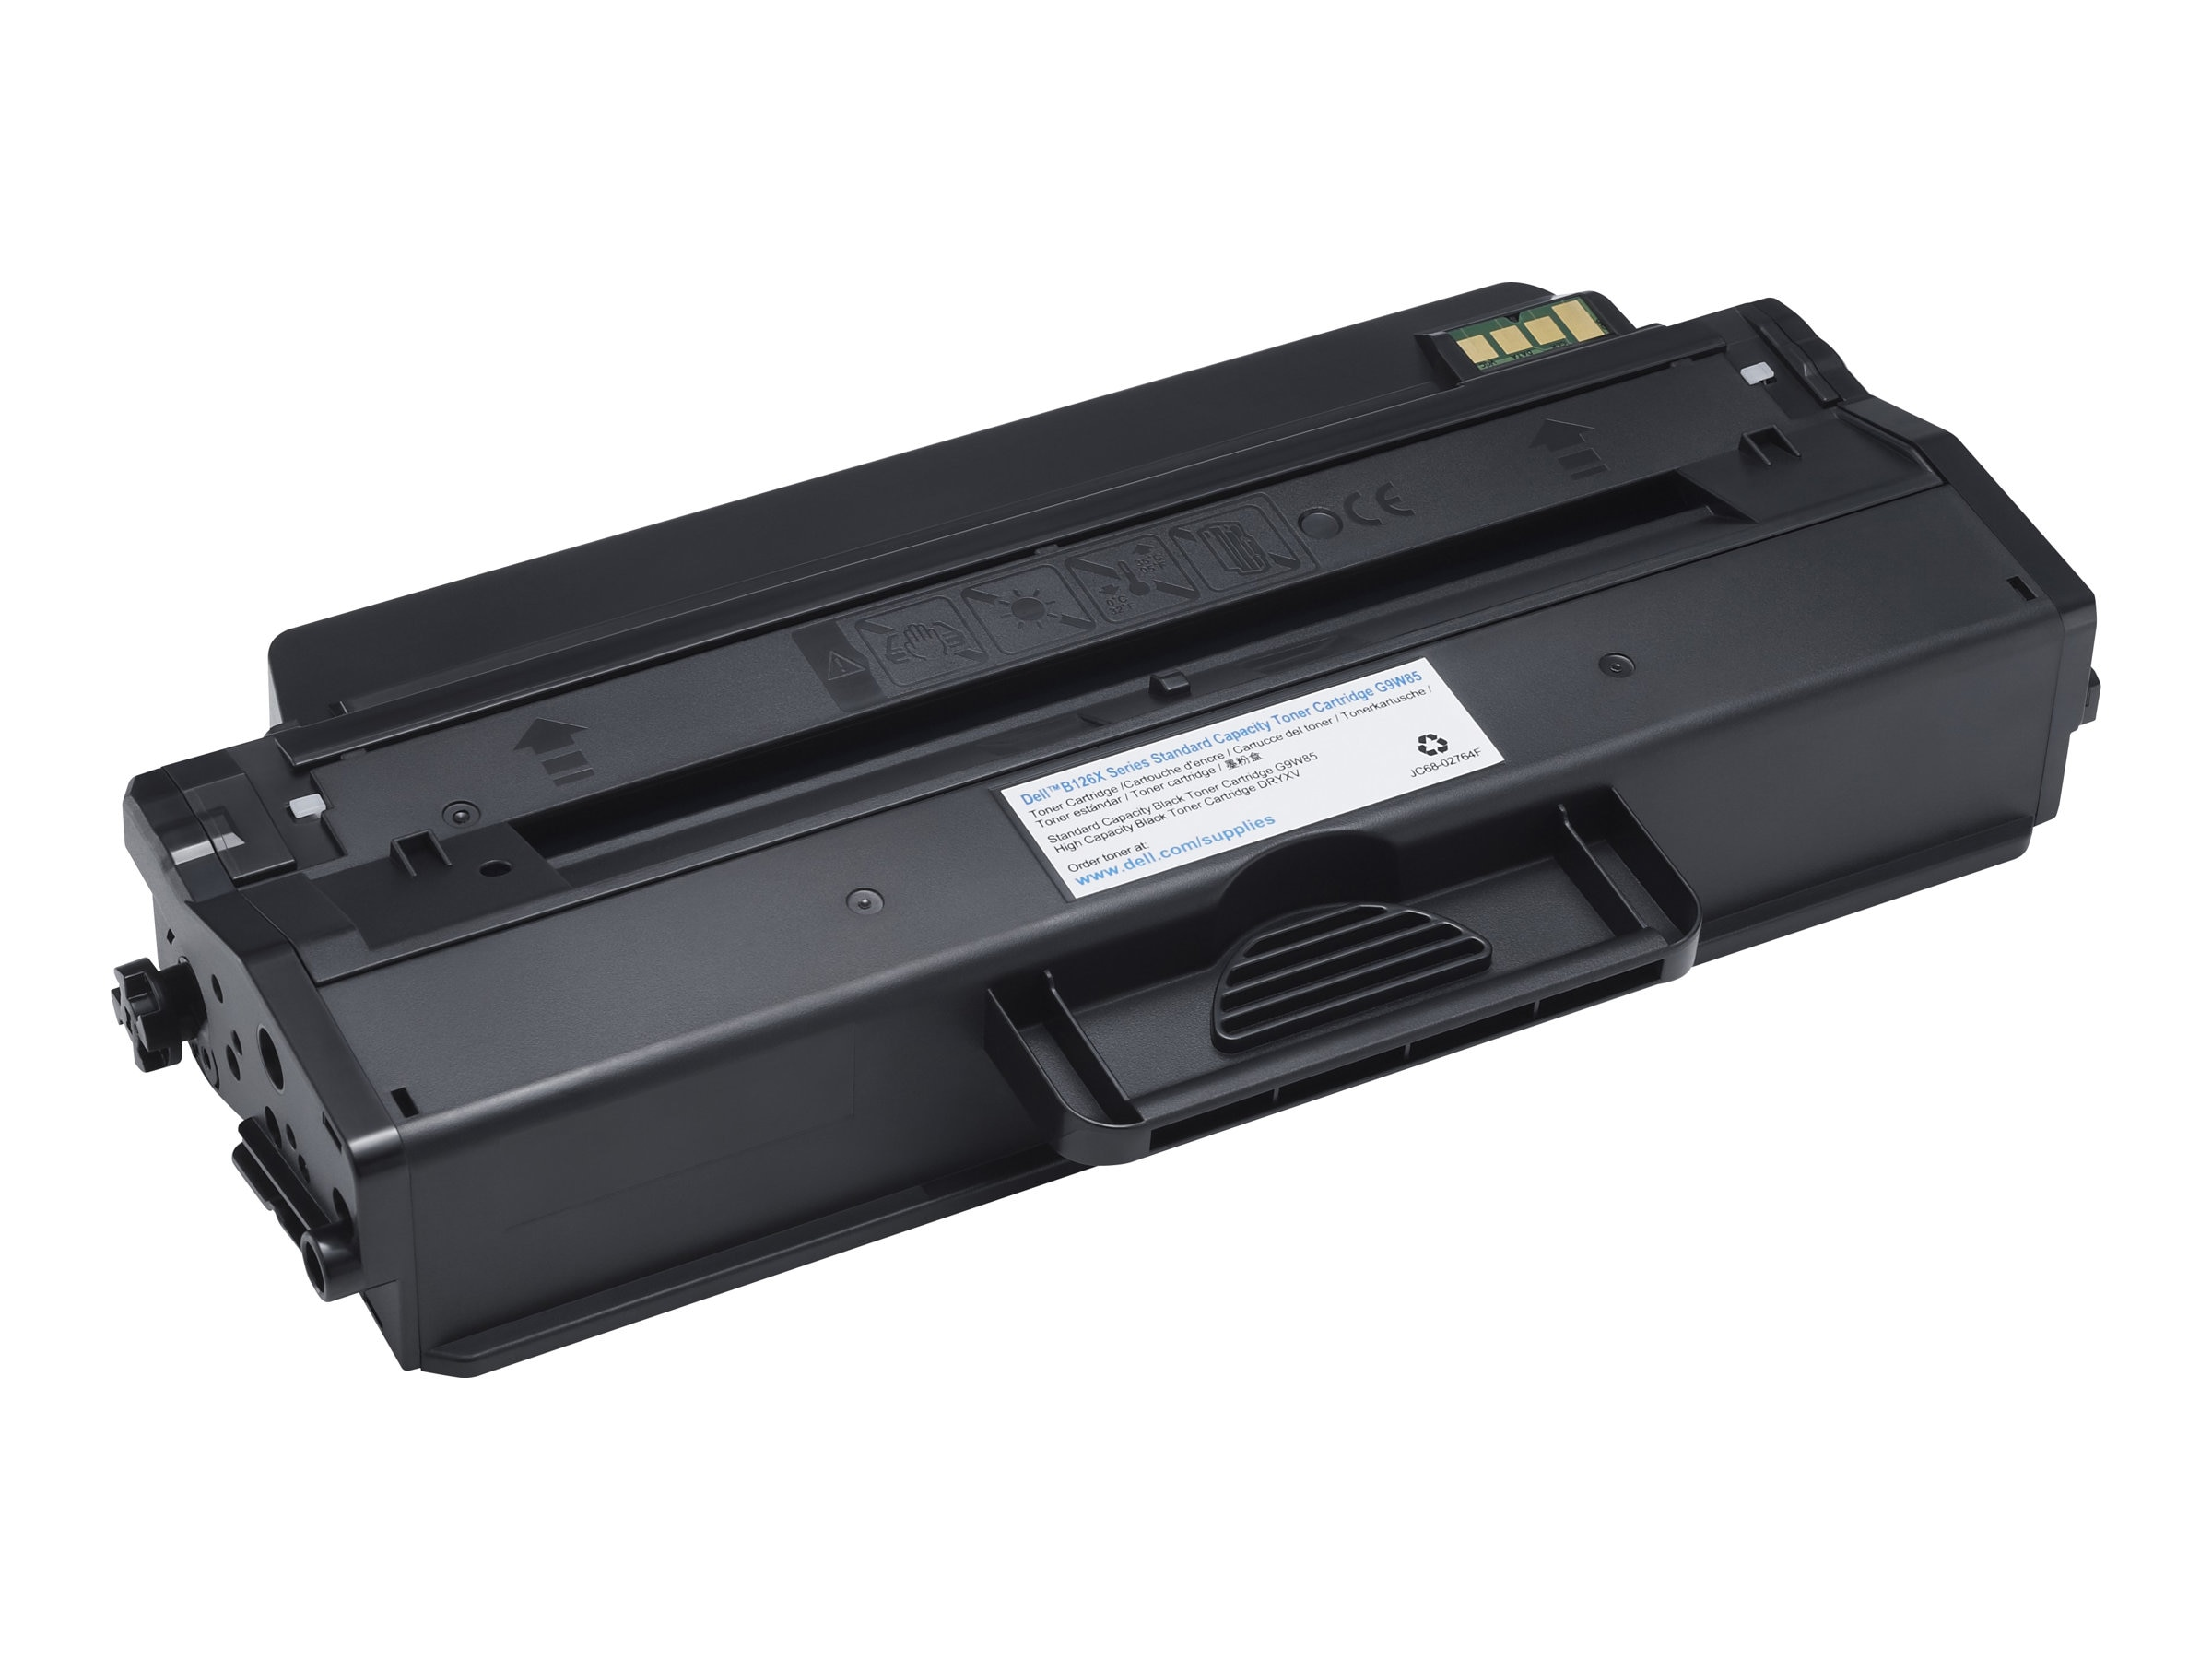 Dell 1500-Page Black Toner Cartridge for Dell B1260dn, B1265dnf & B1265dfw